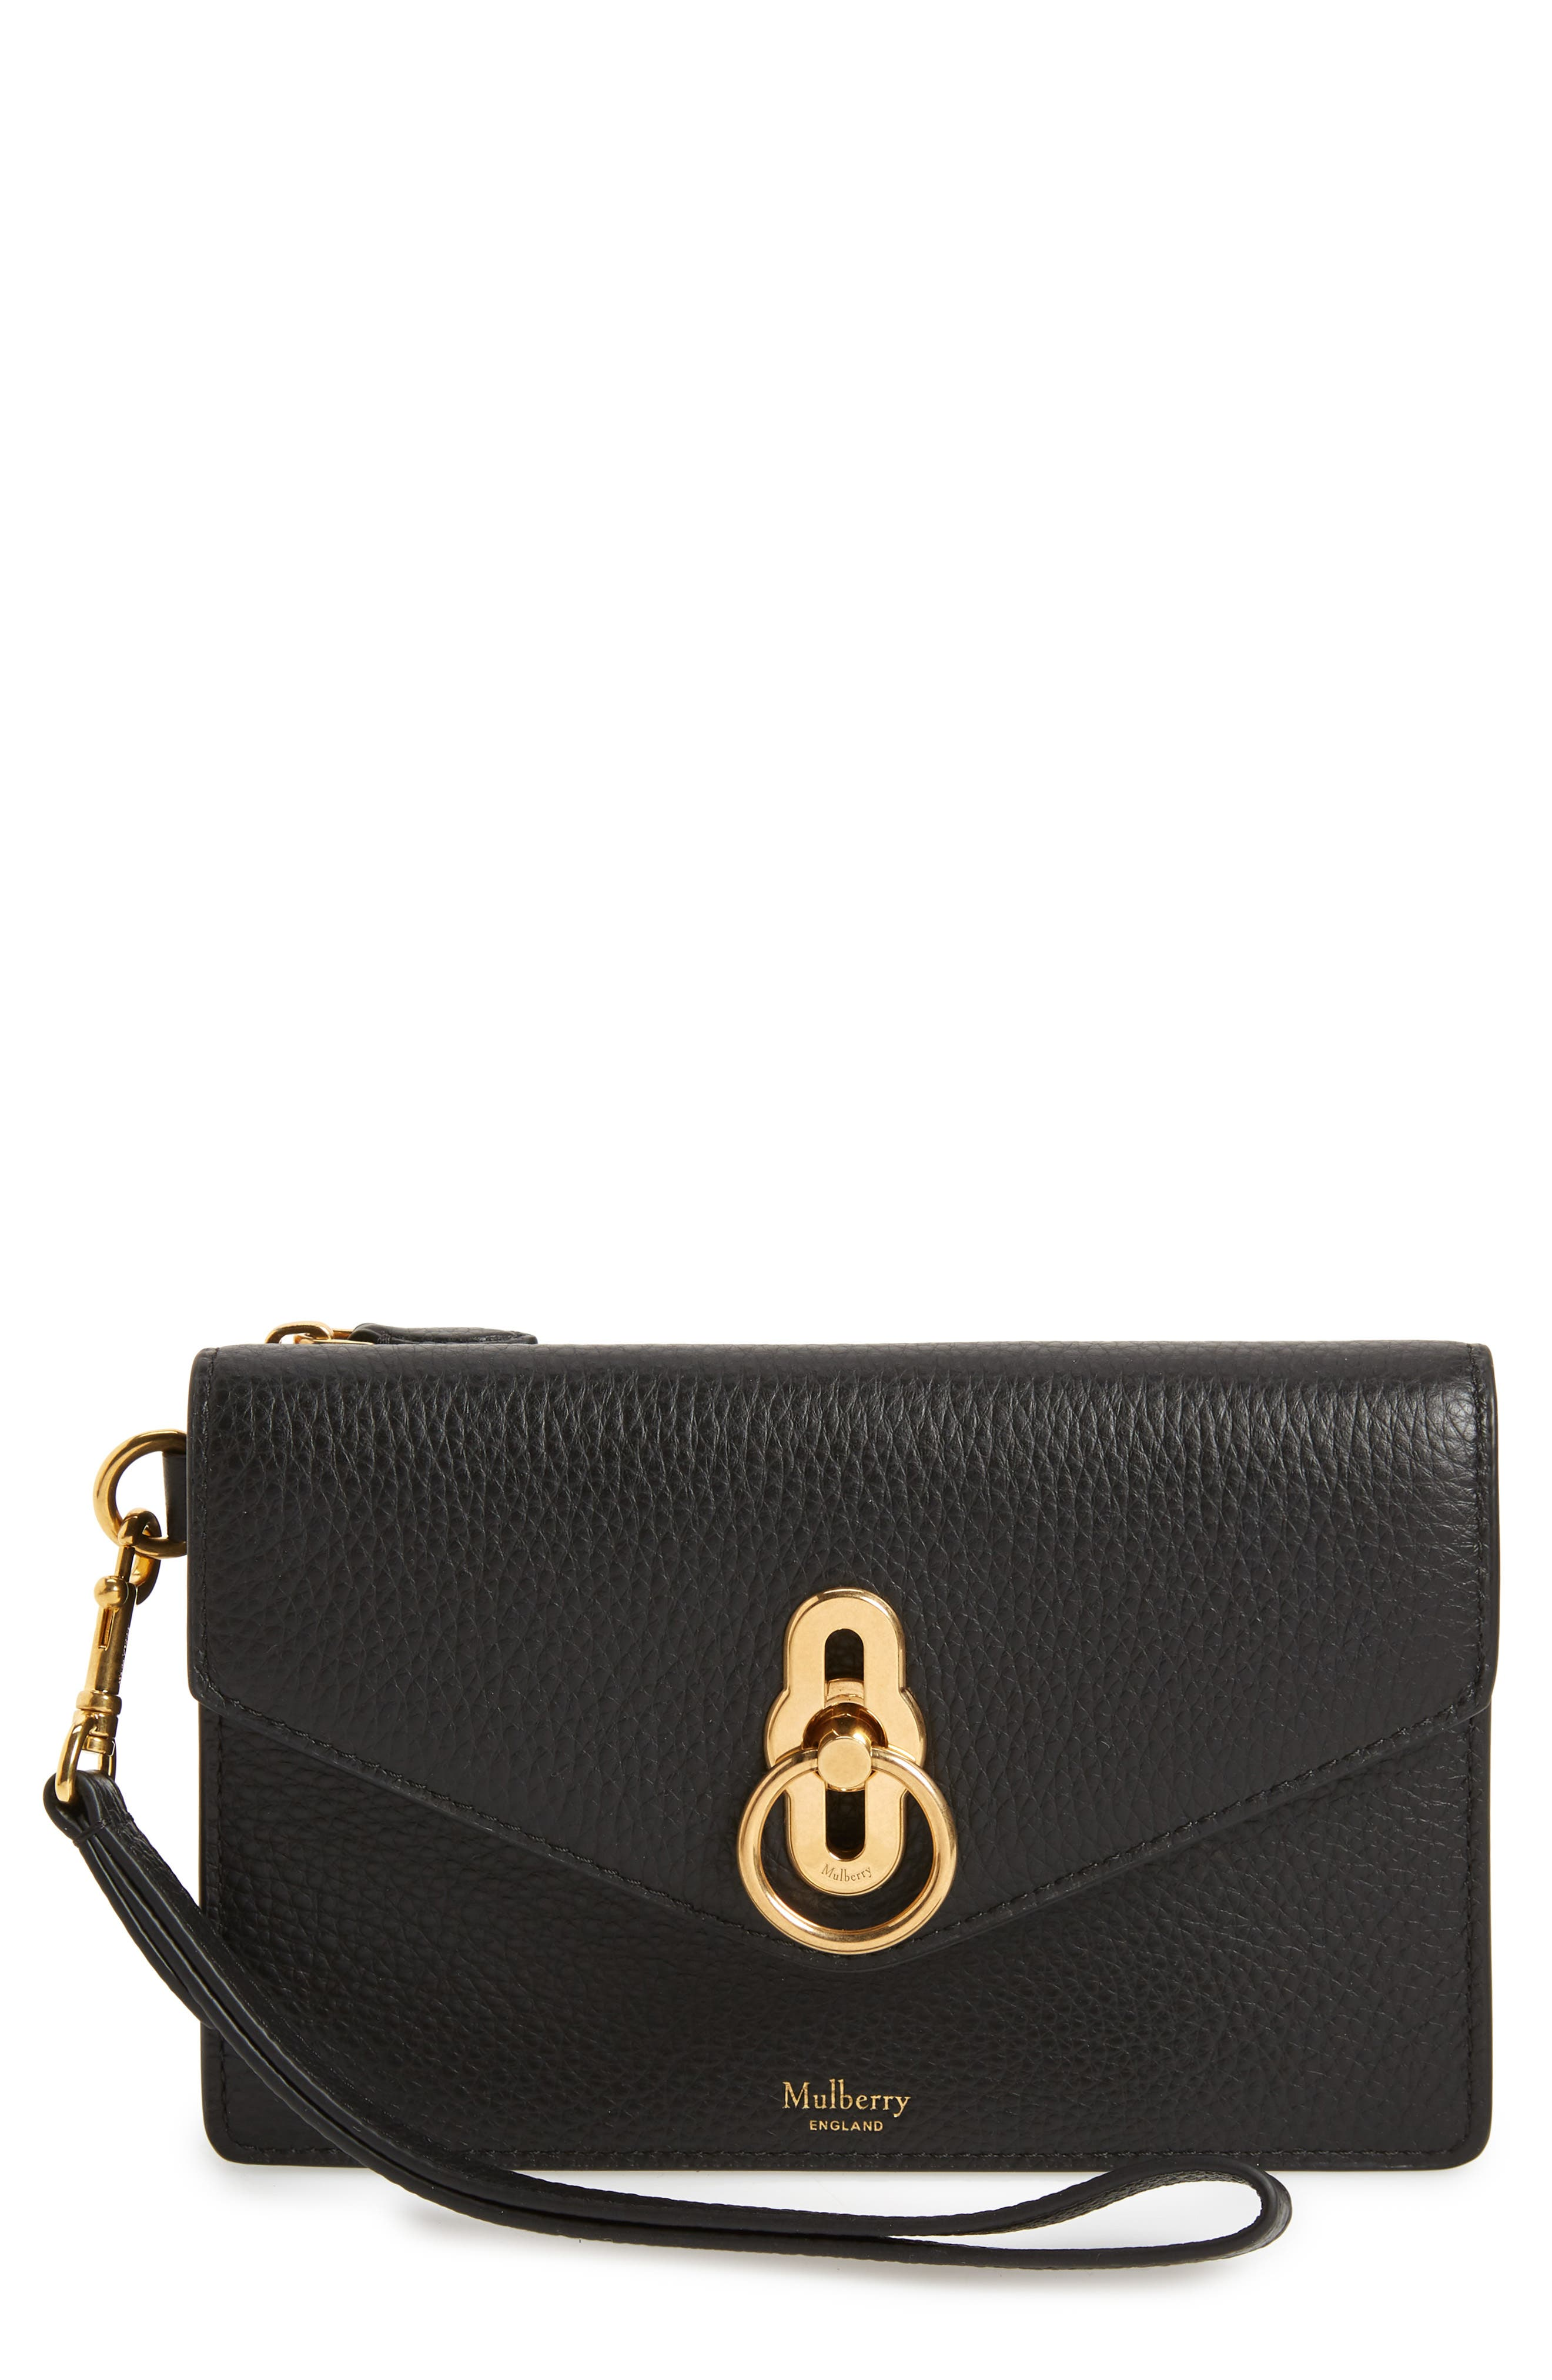 MULBERRY Amberley Iphone Leather Clutch - Black